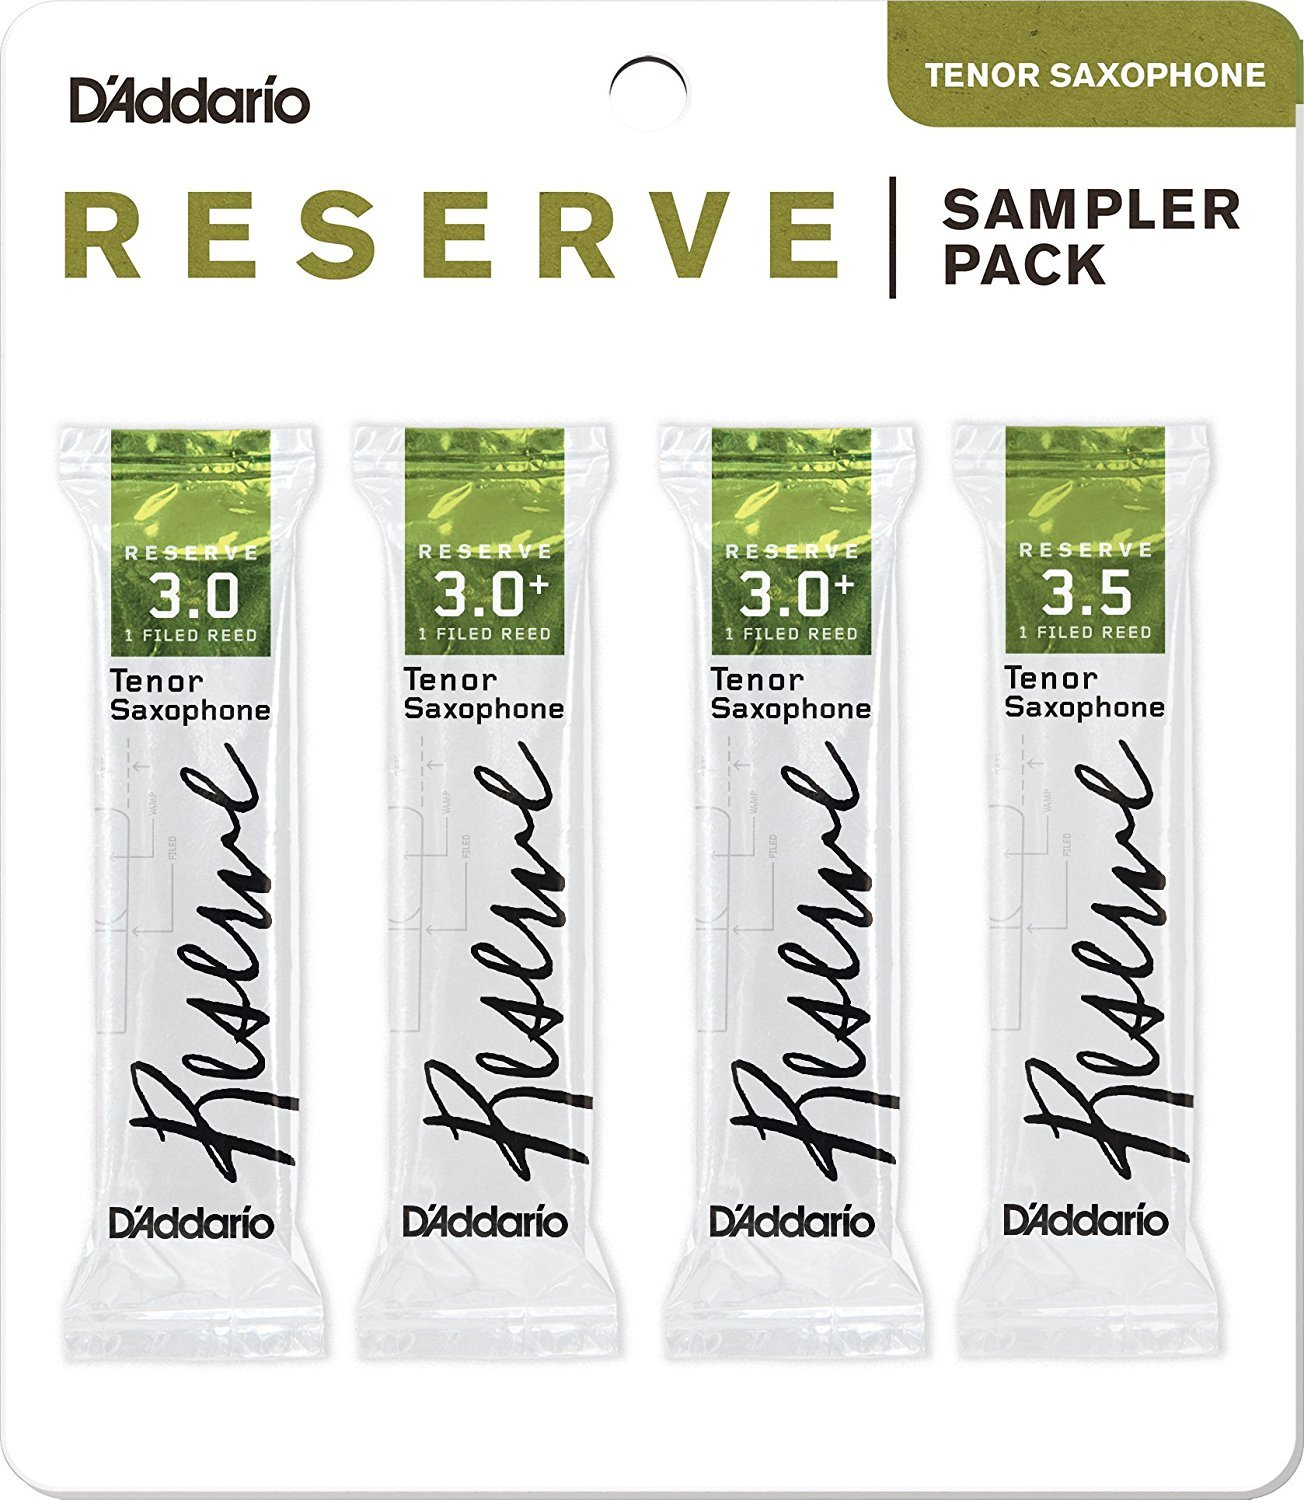 D'Addario Woodwinds DRS-K30 Reserve Tenor Saxophone Reed Sampler Pack, 3.0/3.0+/3.5